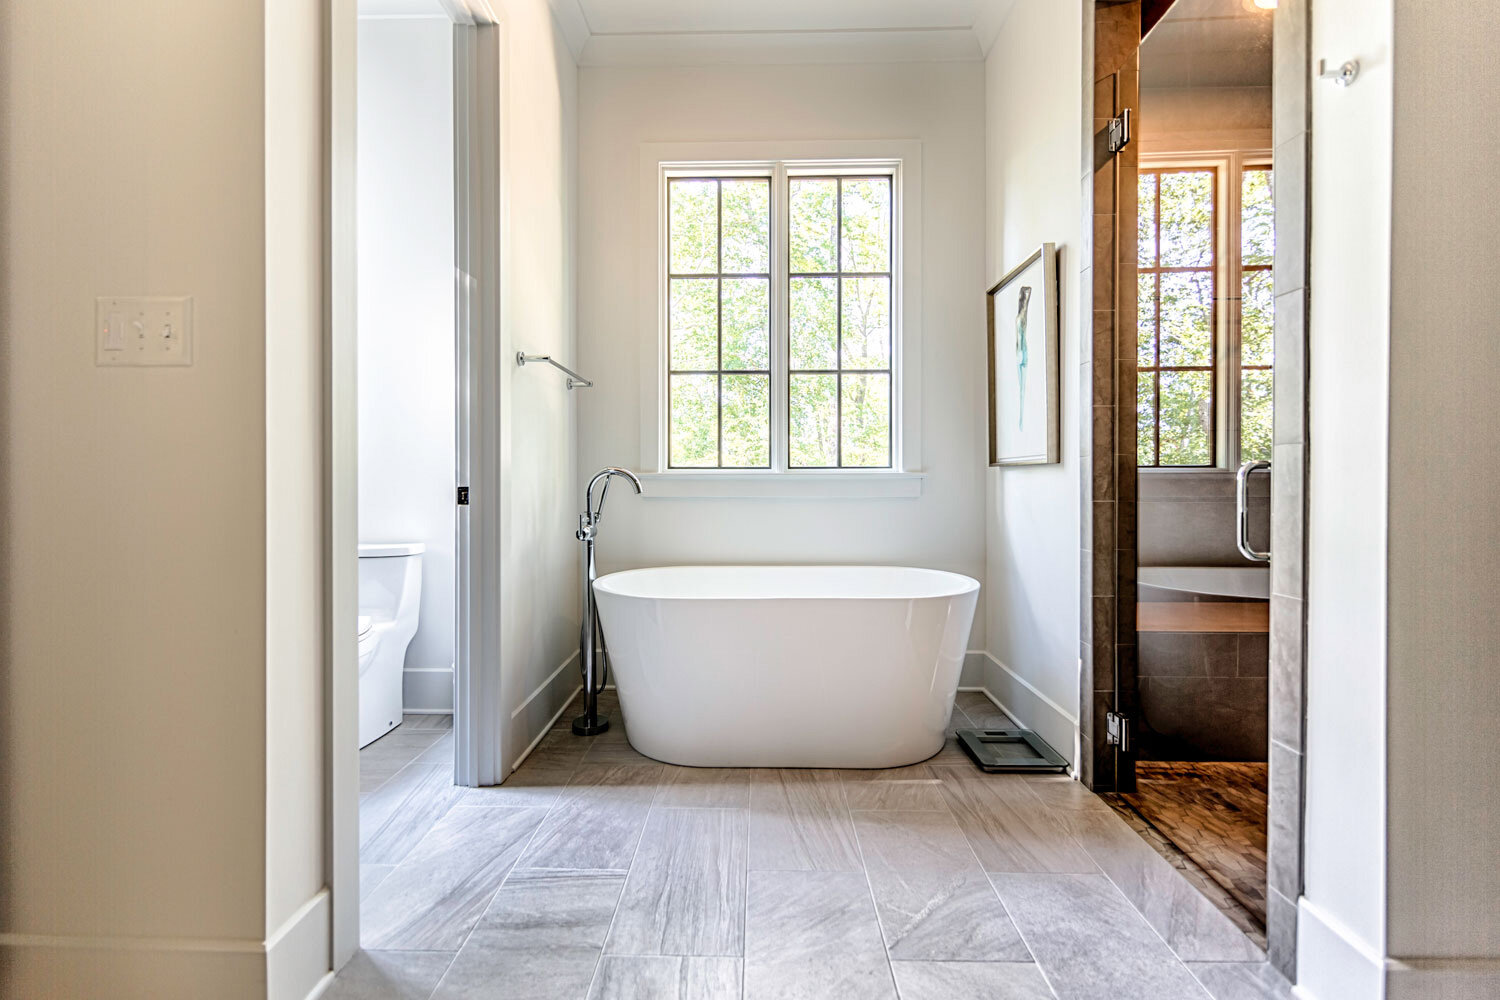 Bathtub recommendations for a bathroom remodel.